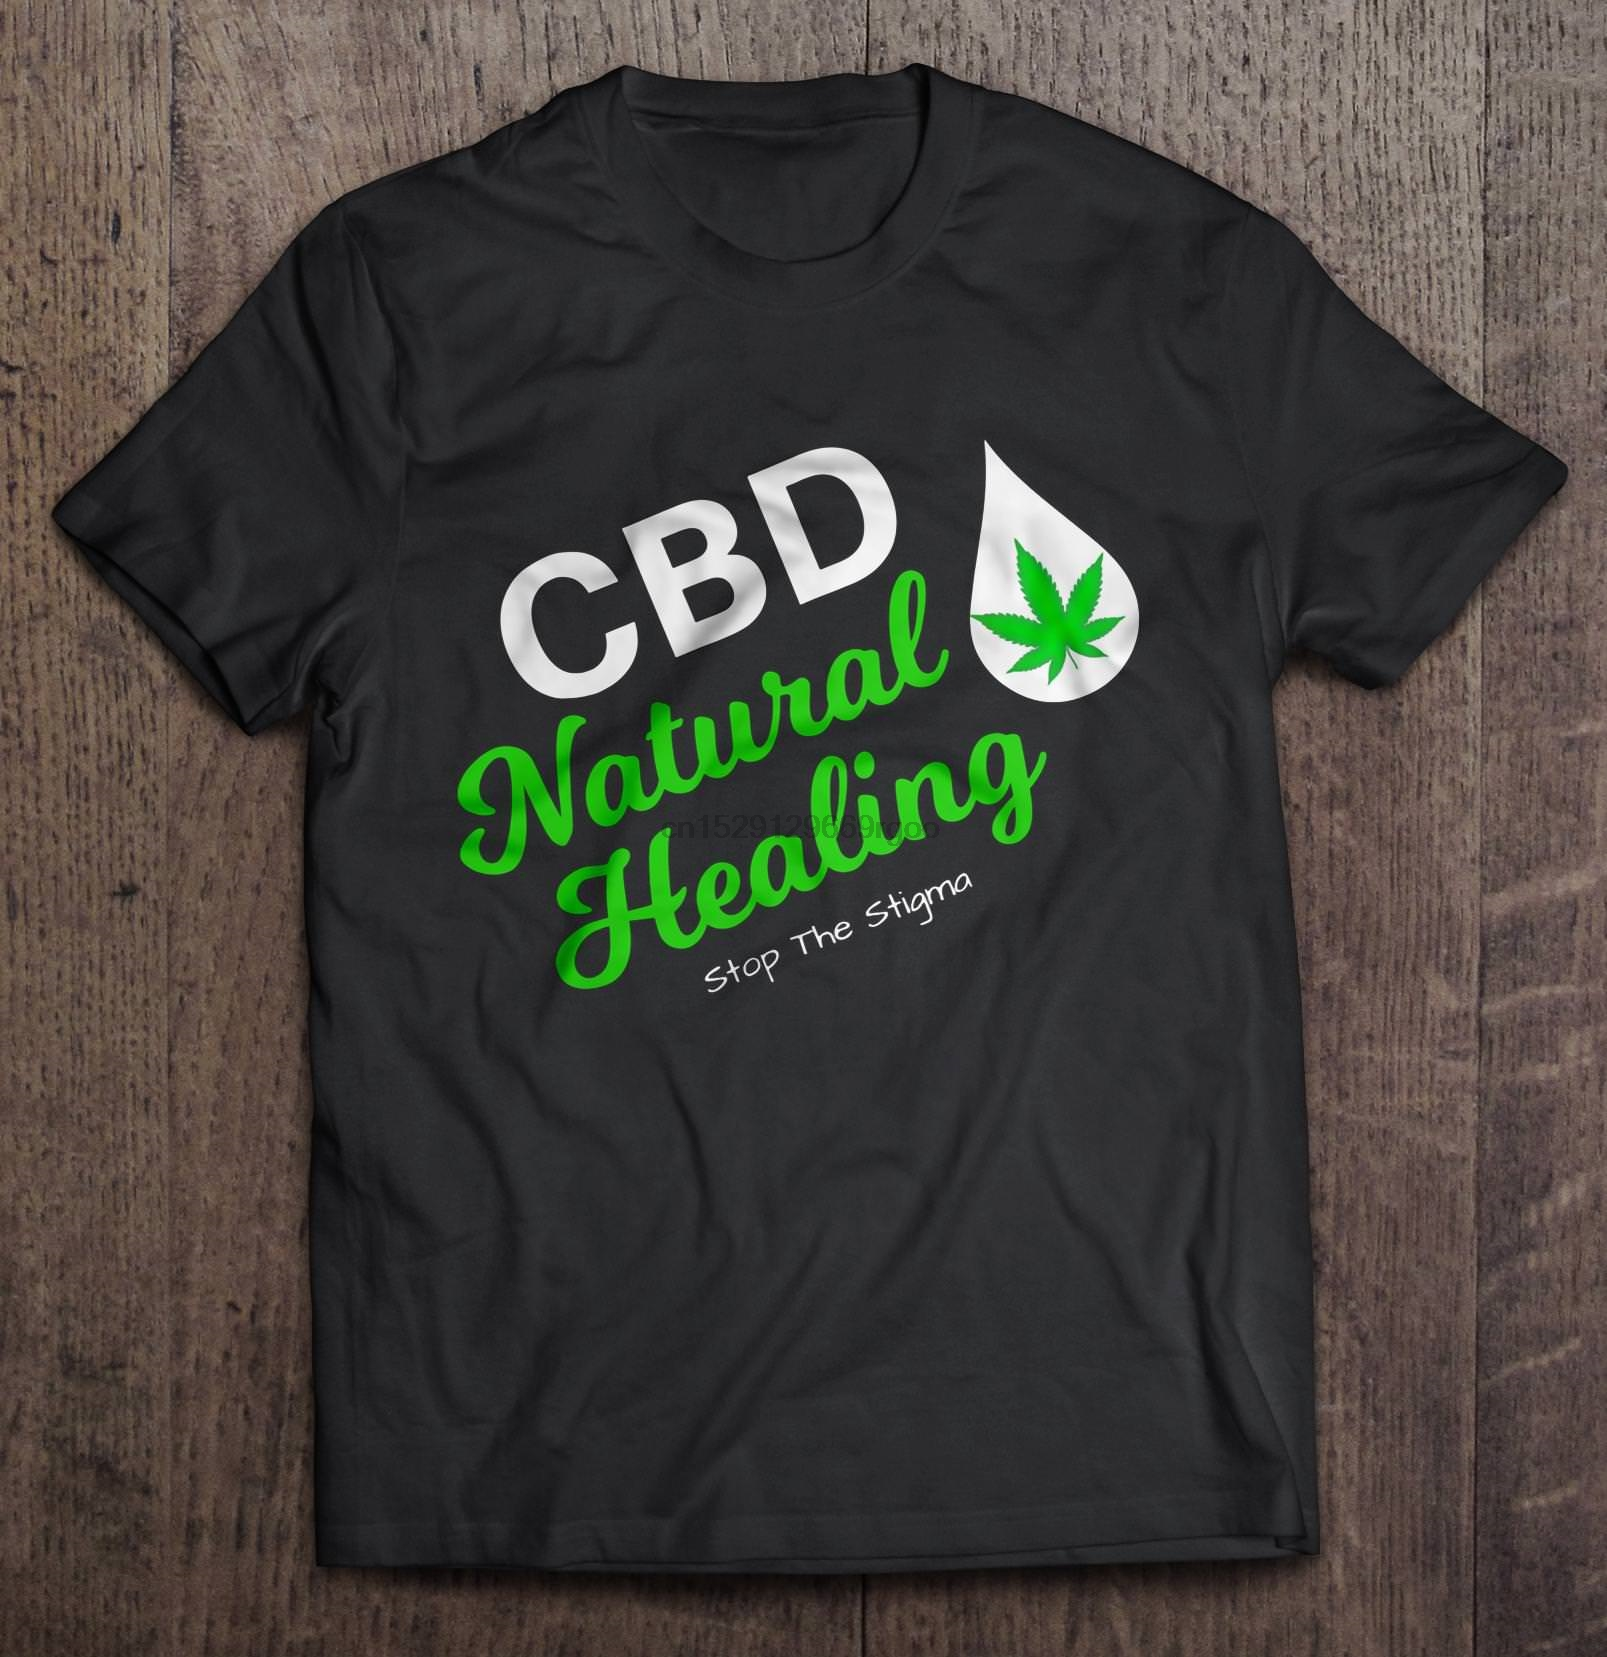 CBD Queen Weed Day Canibis Smoking Time To Get High Black T-Shirt S-6XL